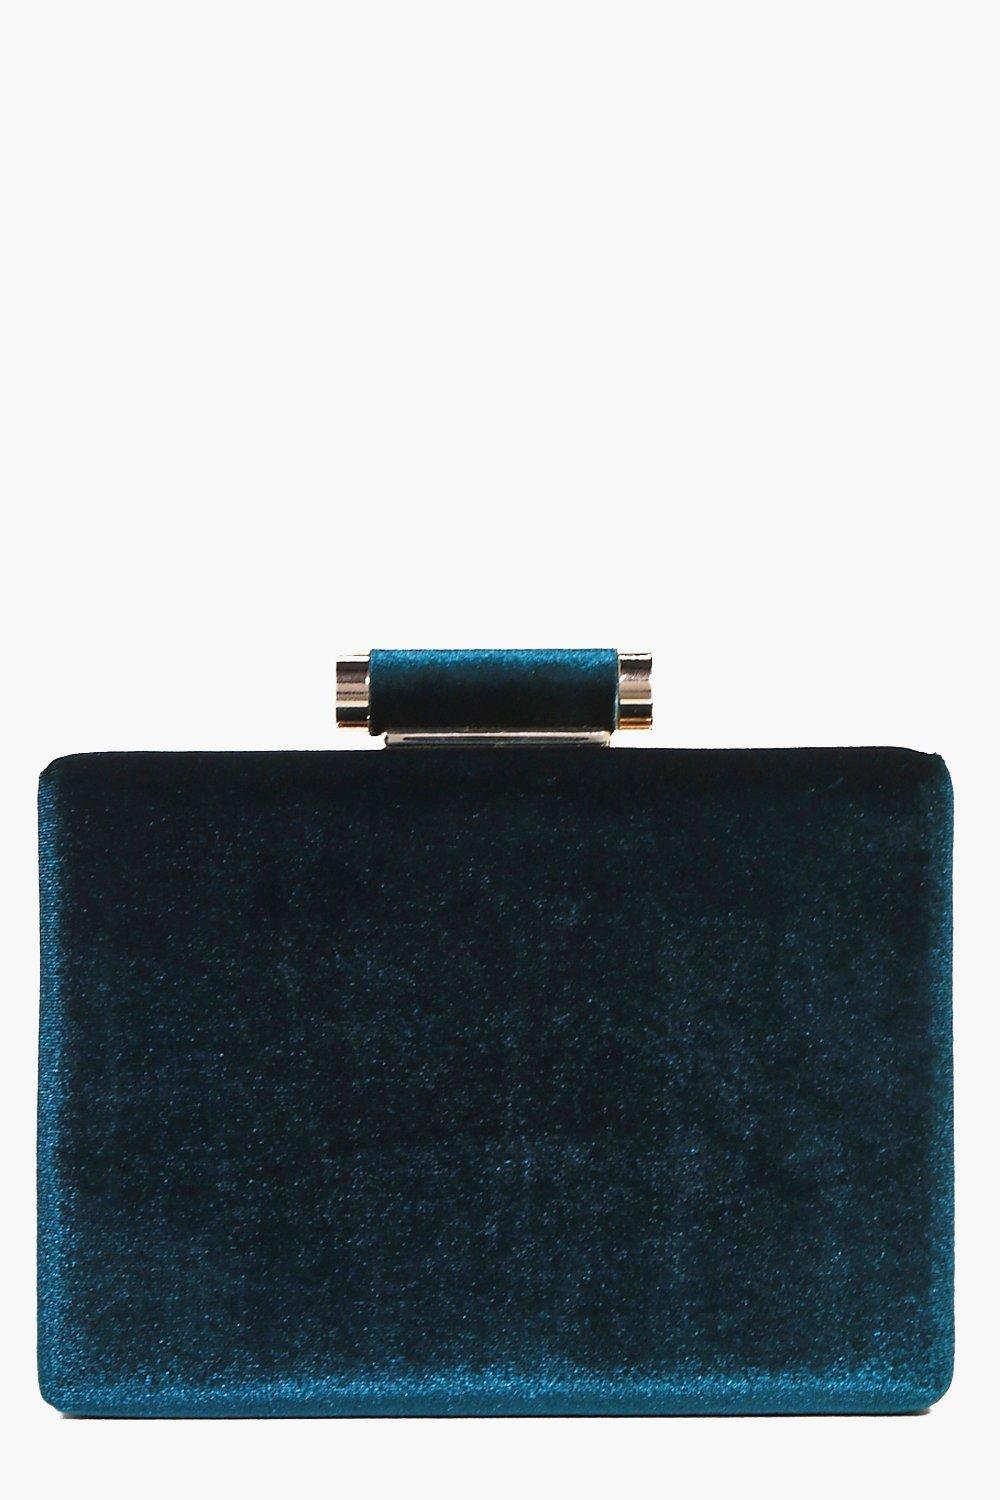 Retro Handbags, Purses, Wallets, Bags Daisy Velvet Box Clutch teal $30.00 AT vintagedancer.com